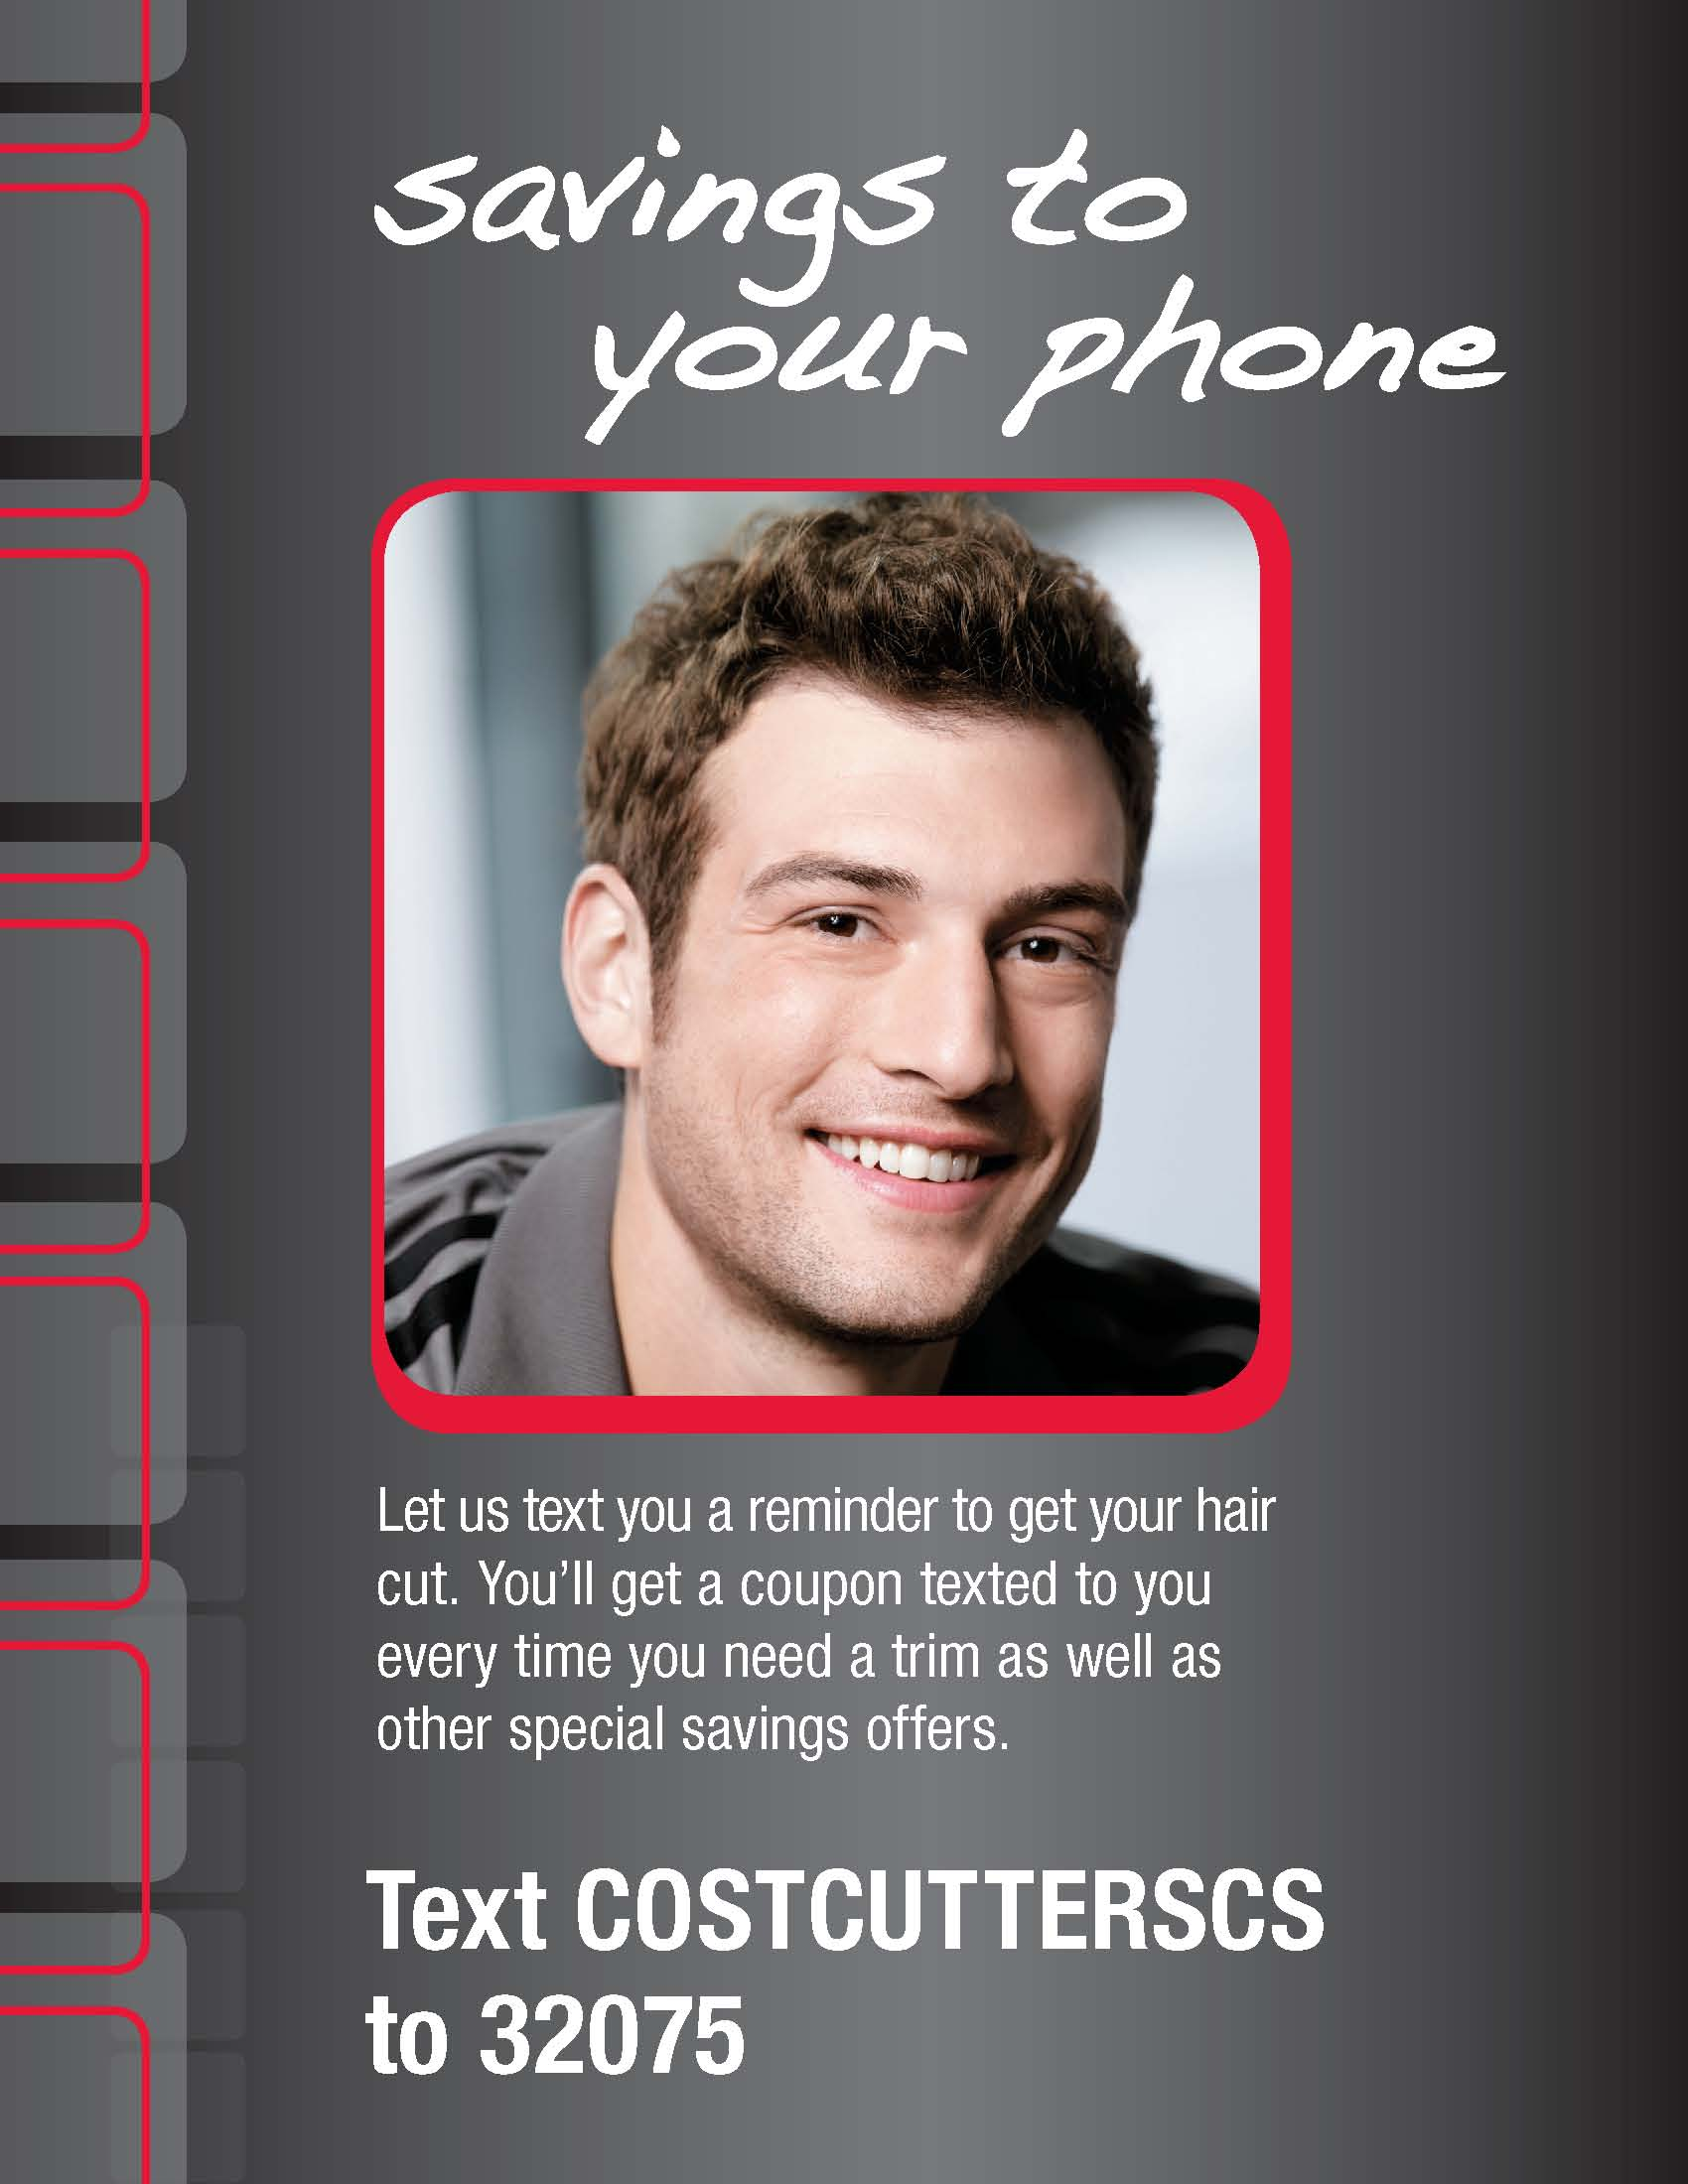 Cost Cutters Mobile Coupons And Hair Cut Reminders Qittle Sms